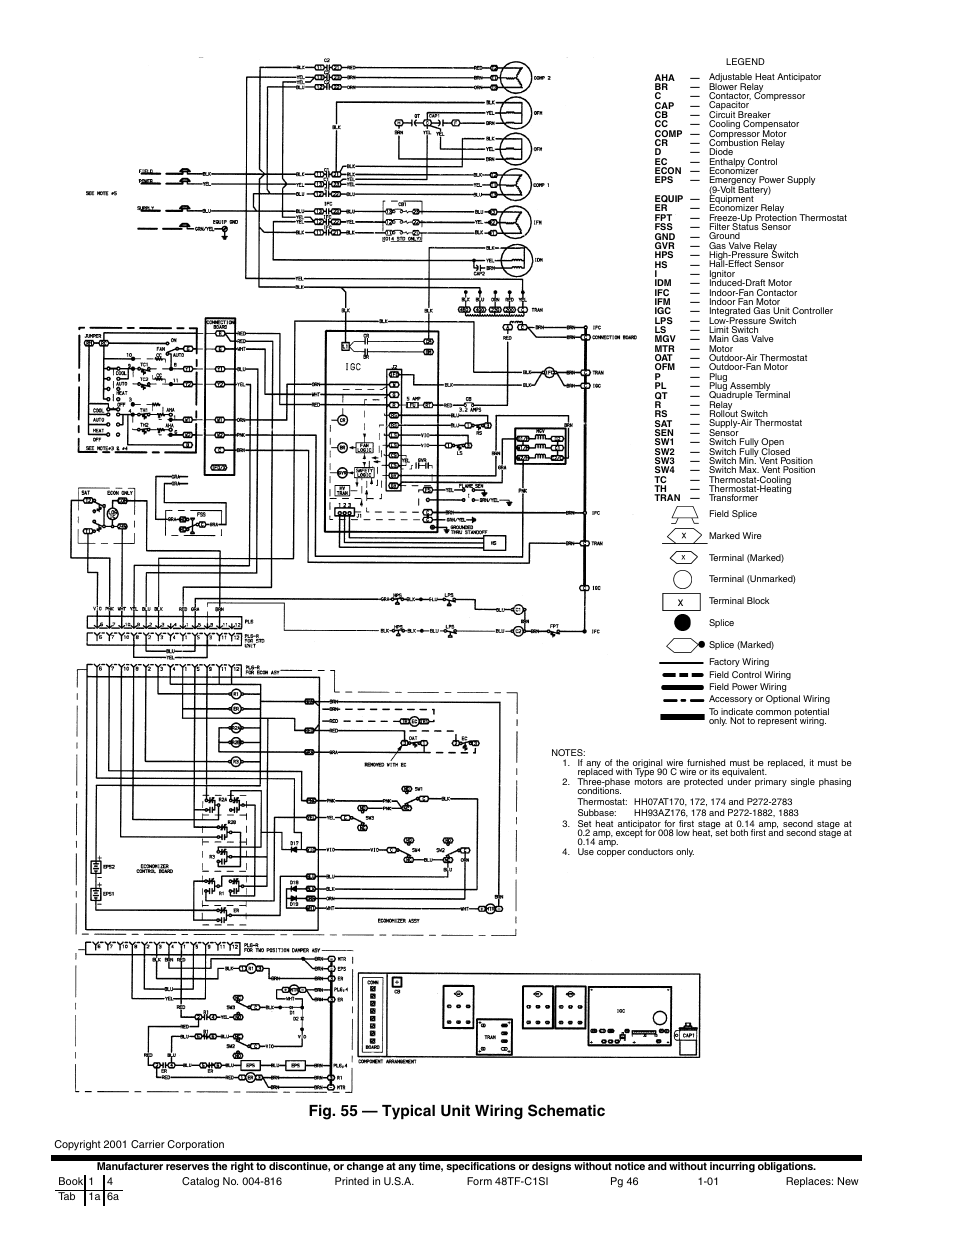 Fig 55 Typical Unit Wiring Schematic Carrier 48tfe008 014 User A In New Manual Page 46 48